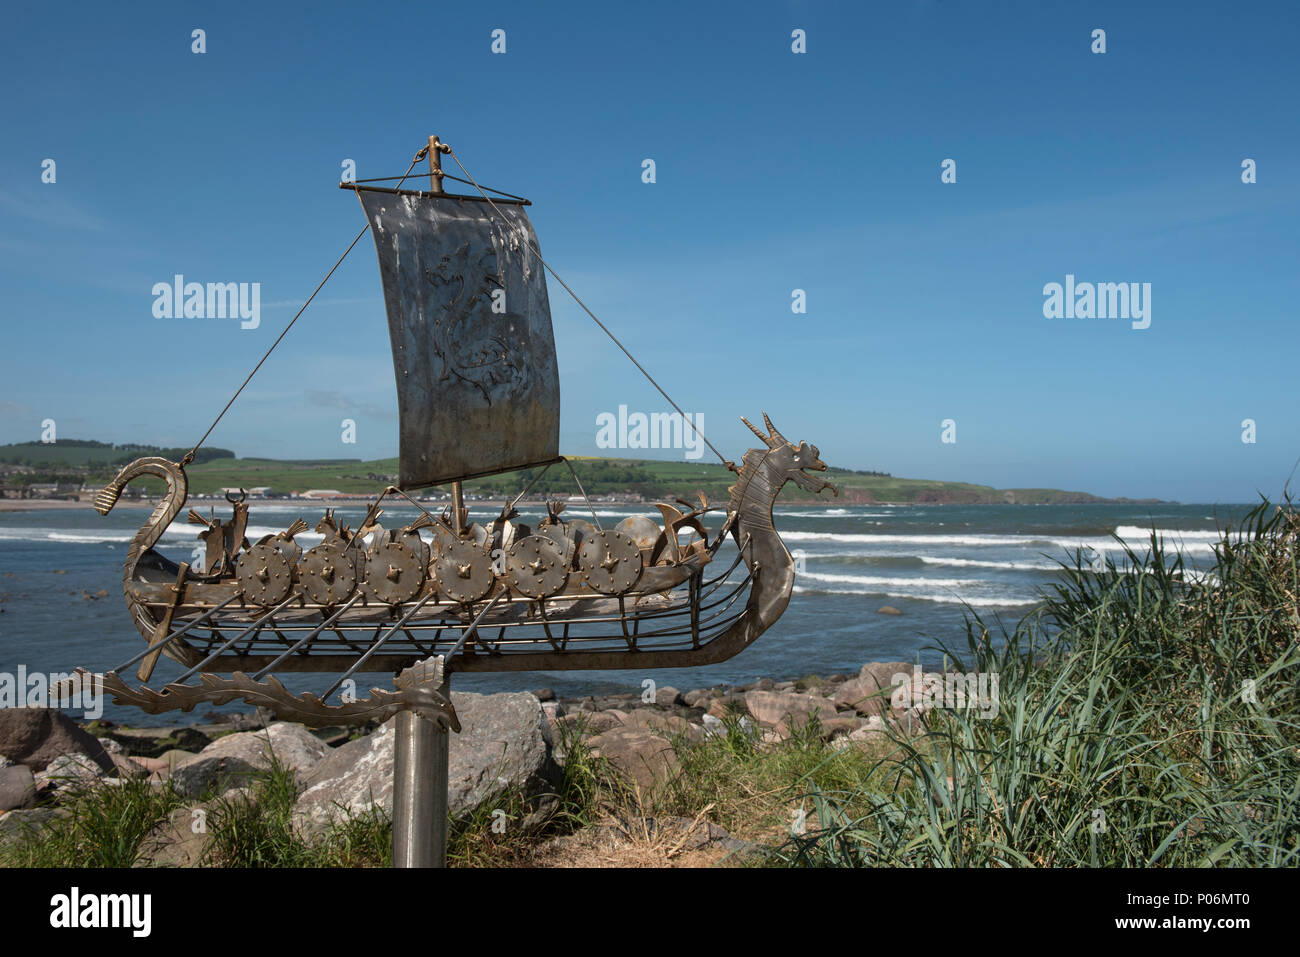 Stonehaven bay boardwalk has several interesting sculptures, the Viking longboat sculpture, Stonehaven, Aberdeenshire, Scotland. - Stock Image